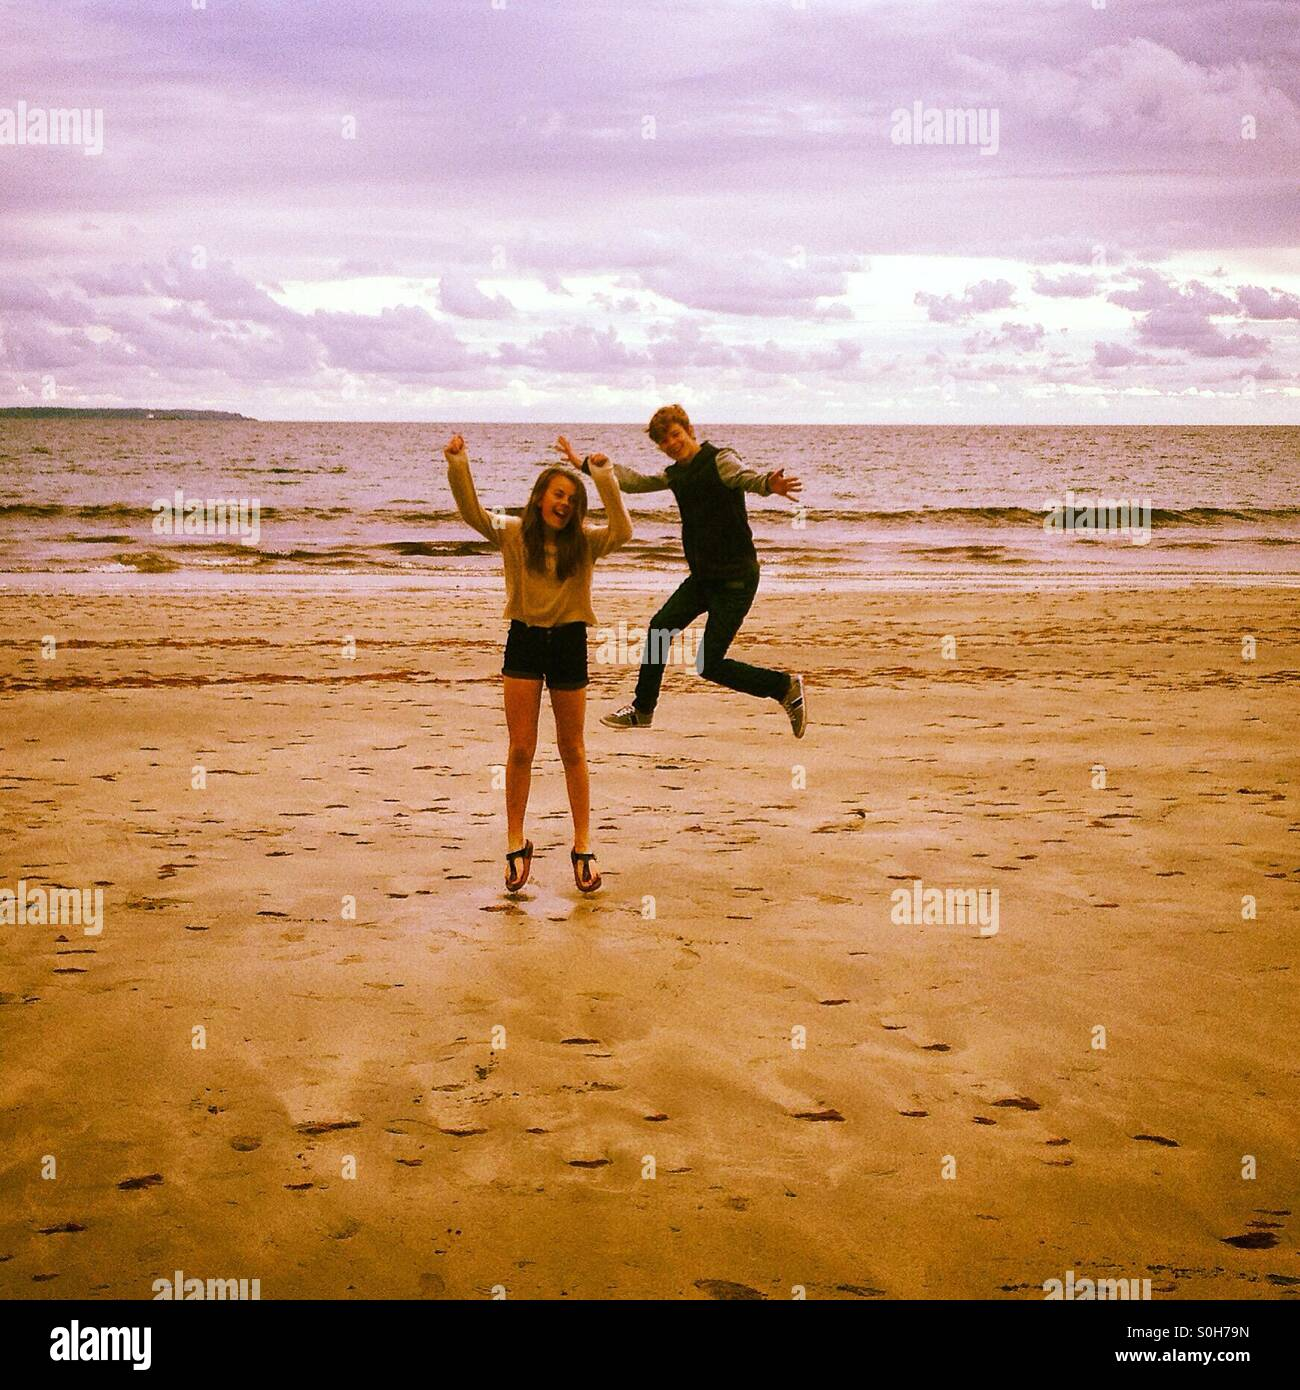 Boy and girl leaping on beach - Stock Image